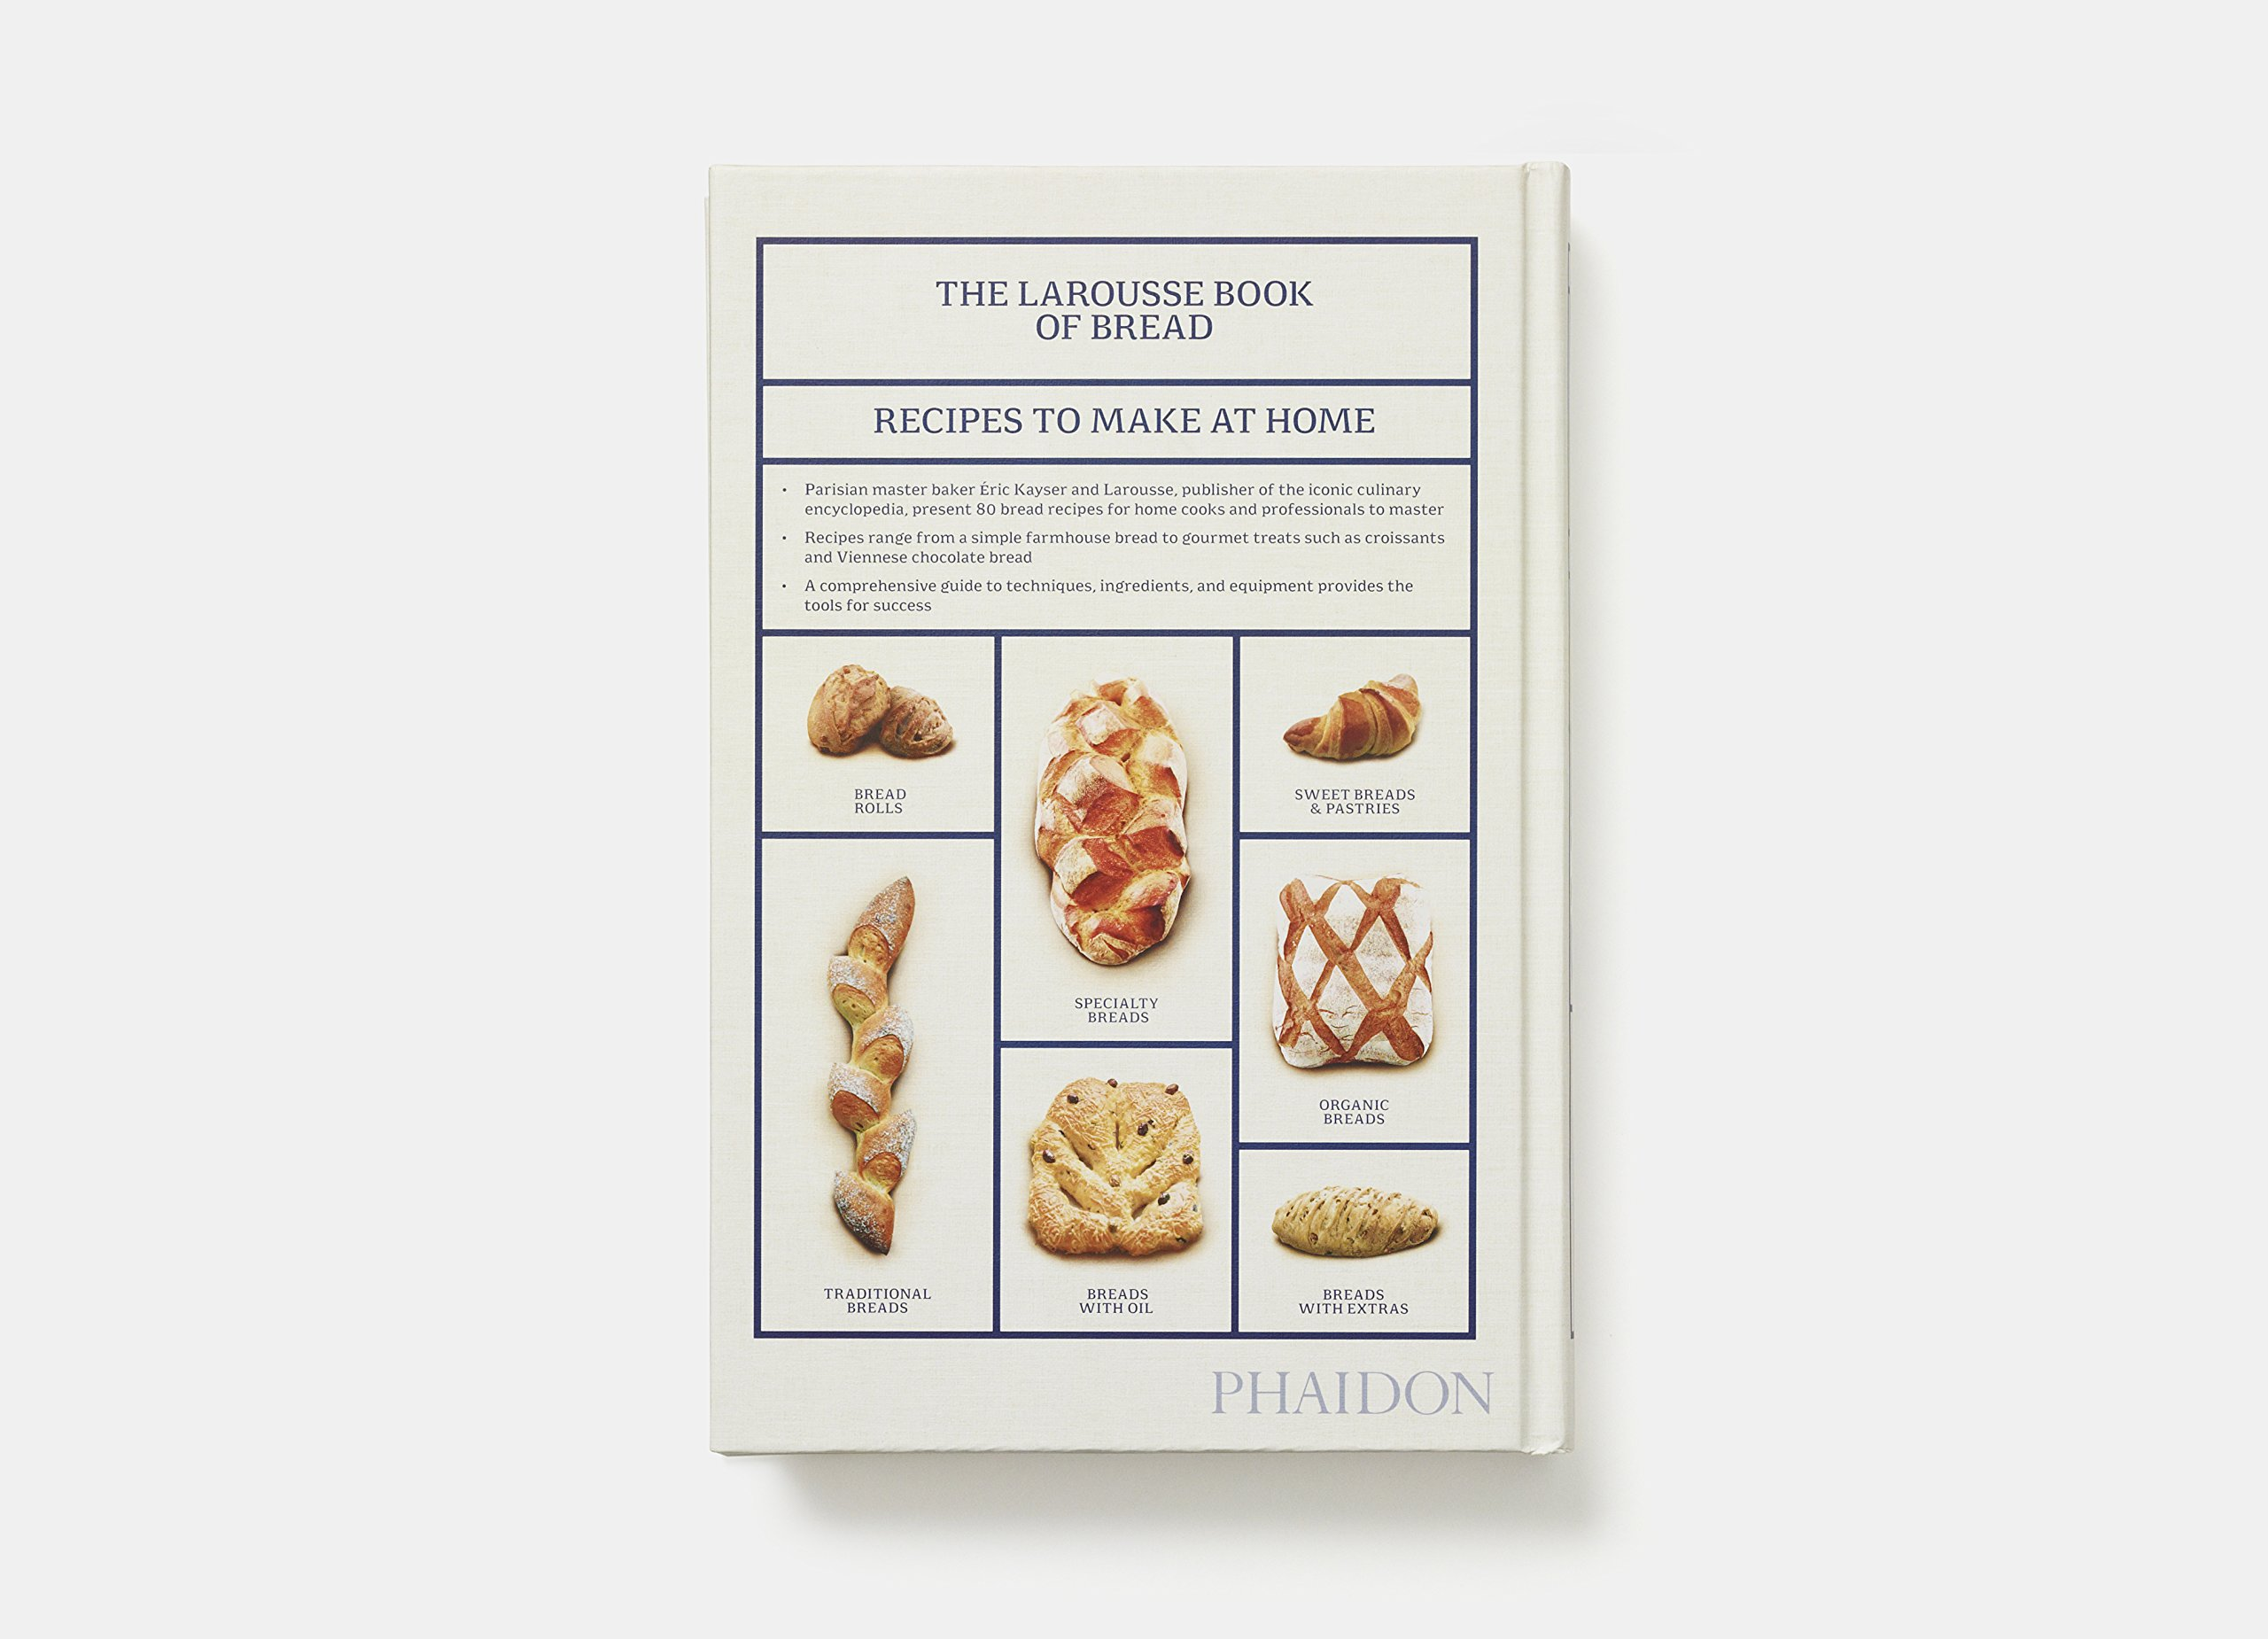 The Larousse Book of Bread thumbnail